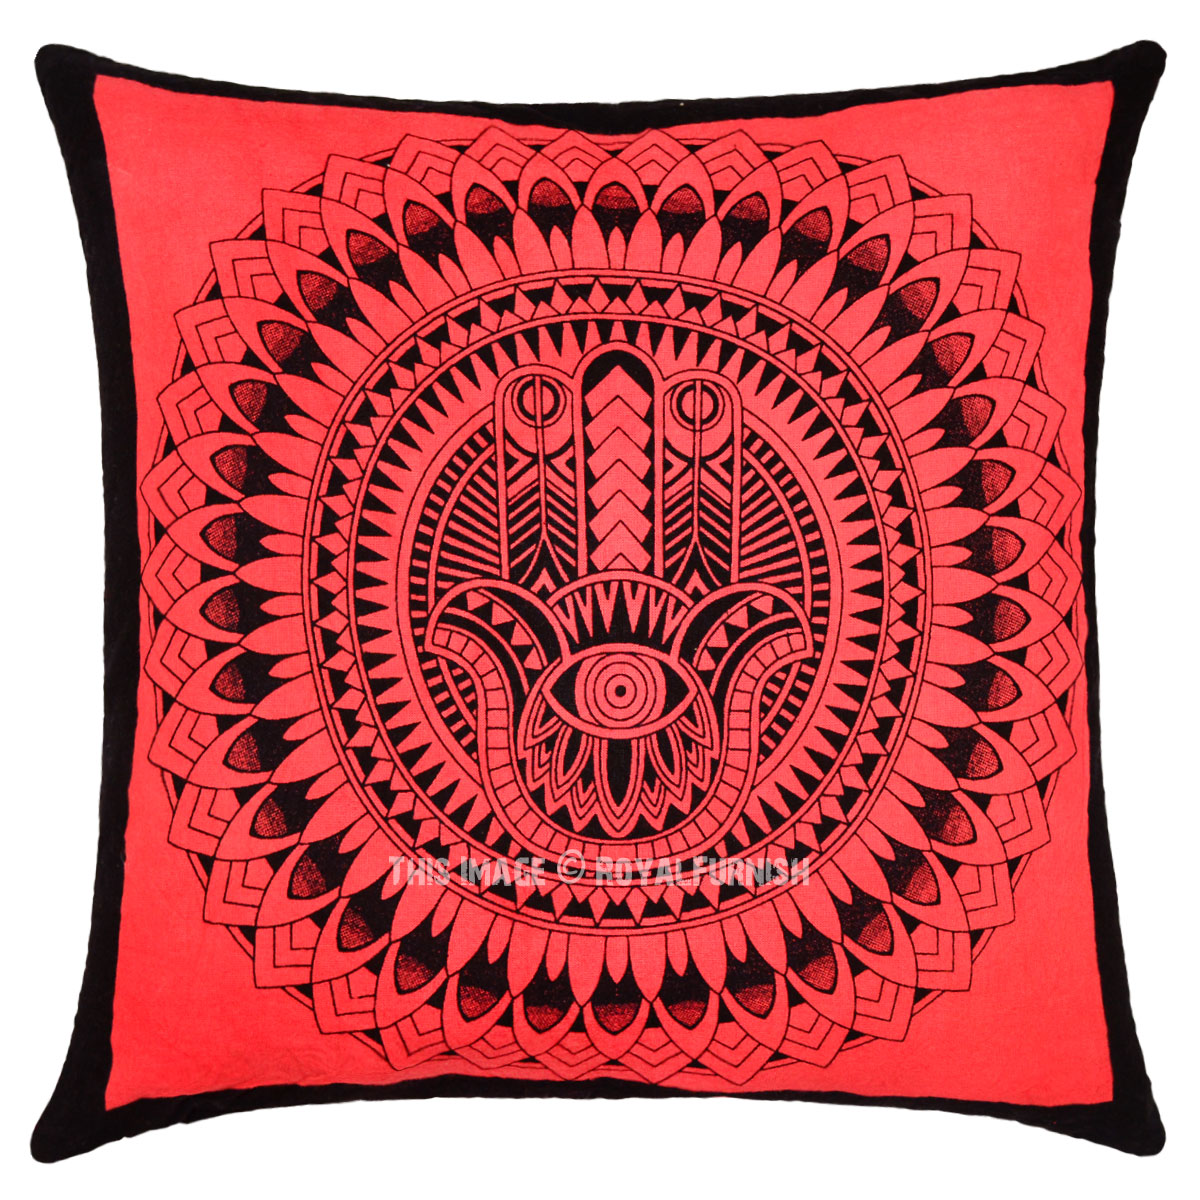 Square Throw Pillow Cover : Red Decorative Hamsa Hand Printed Tie Dye Square Throw Pillow Cover 16X16 - RoyalFurnish.com